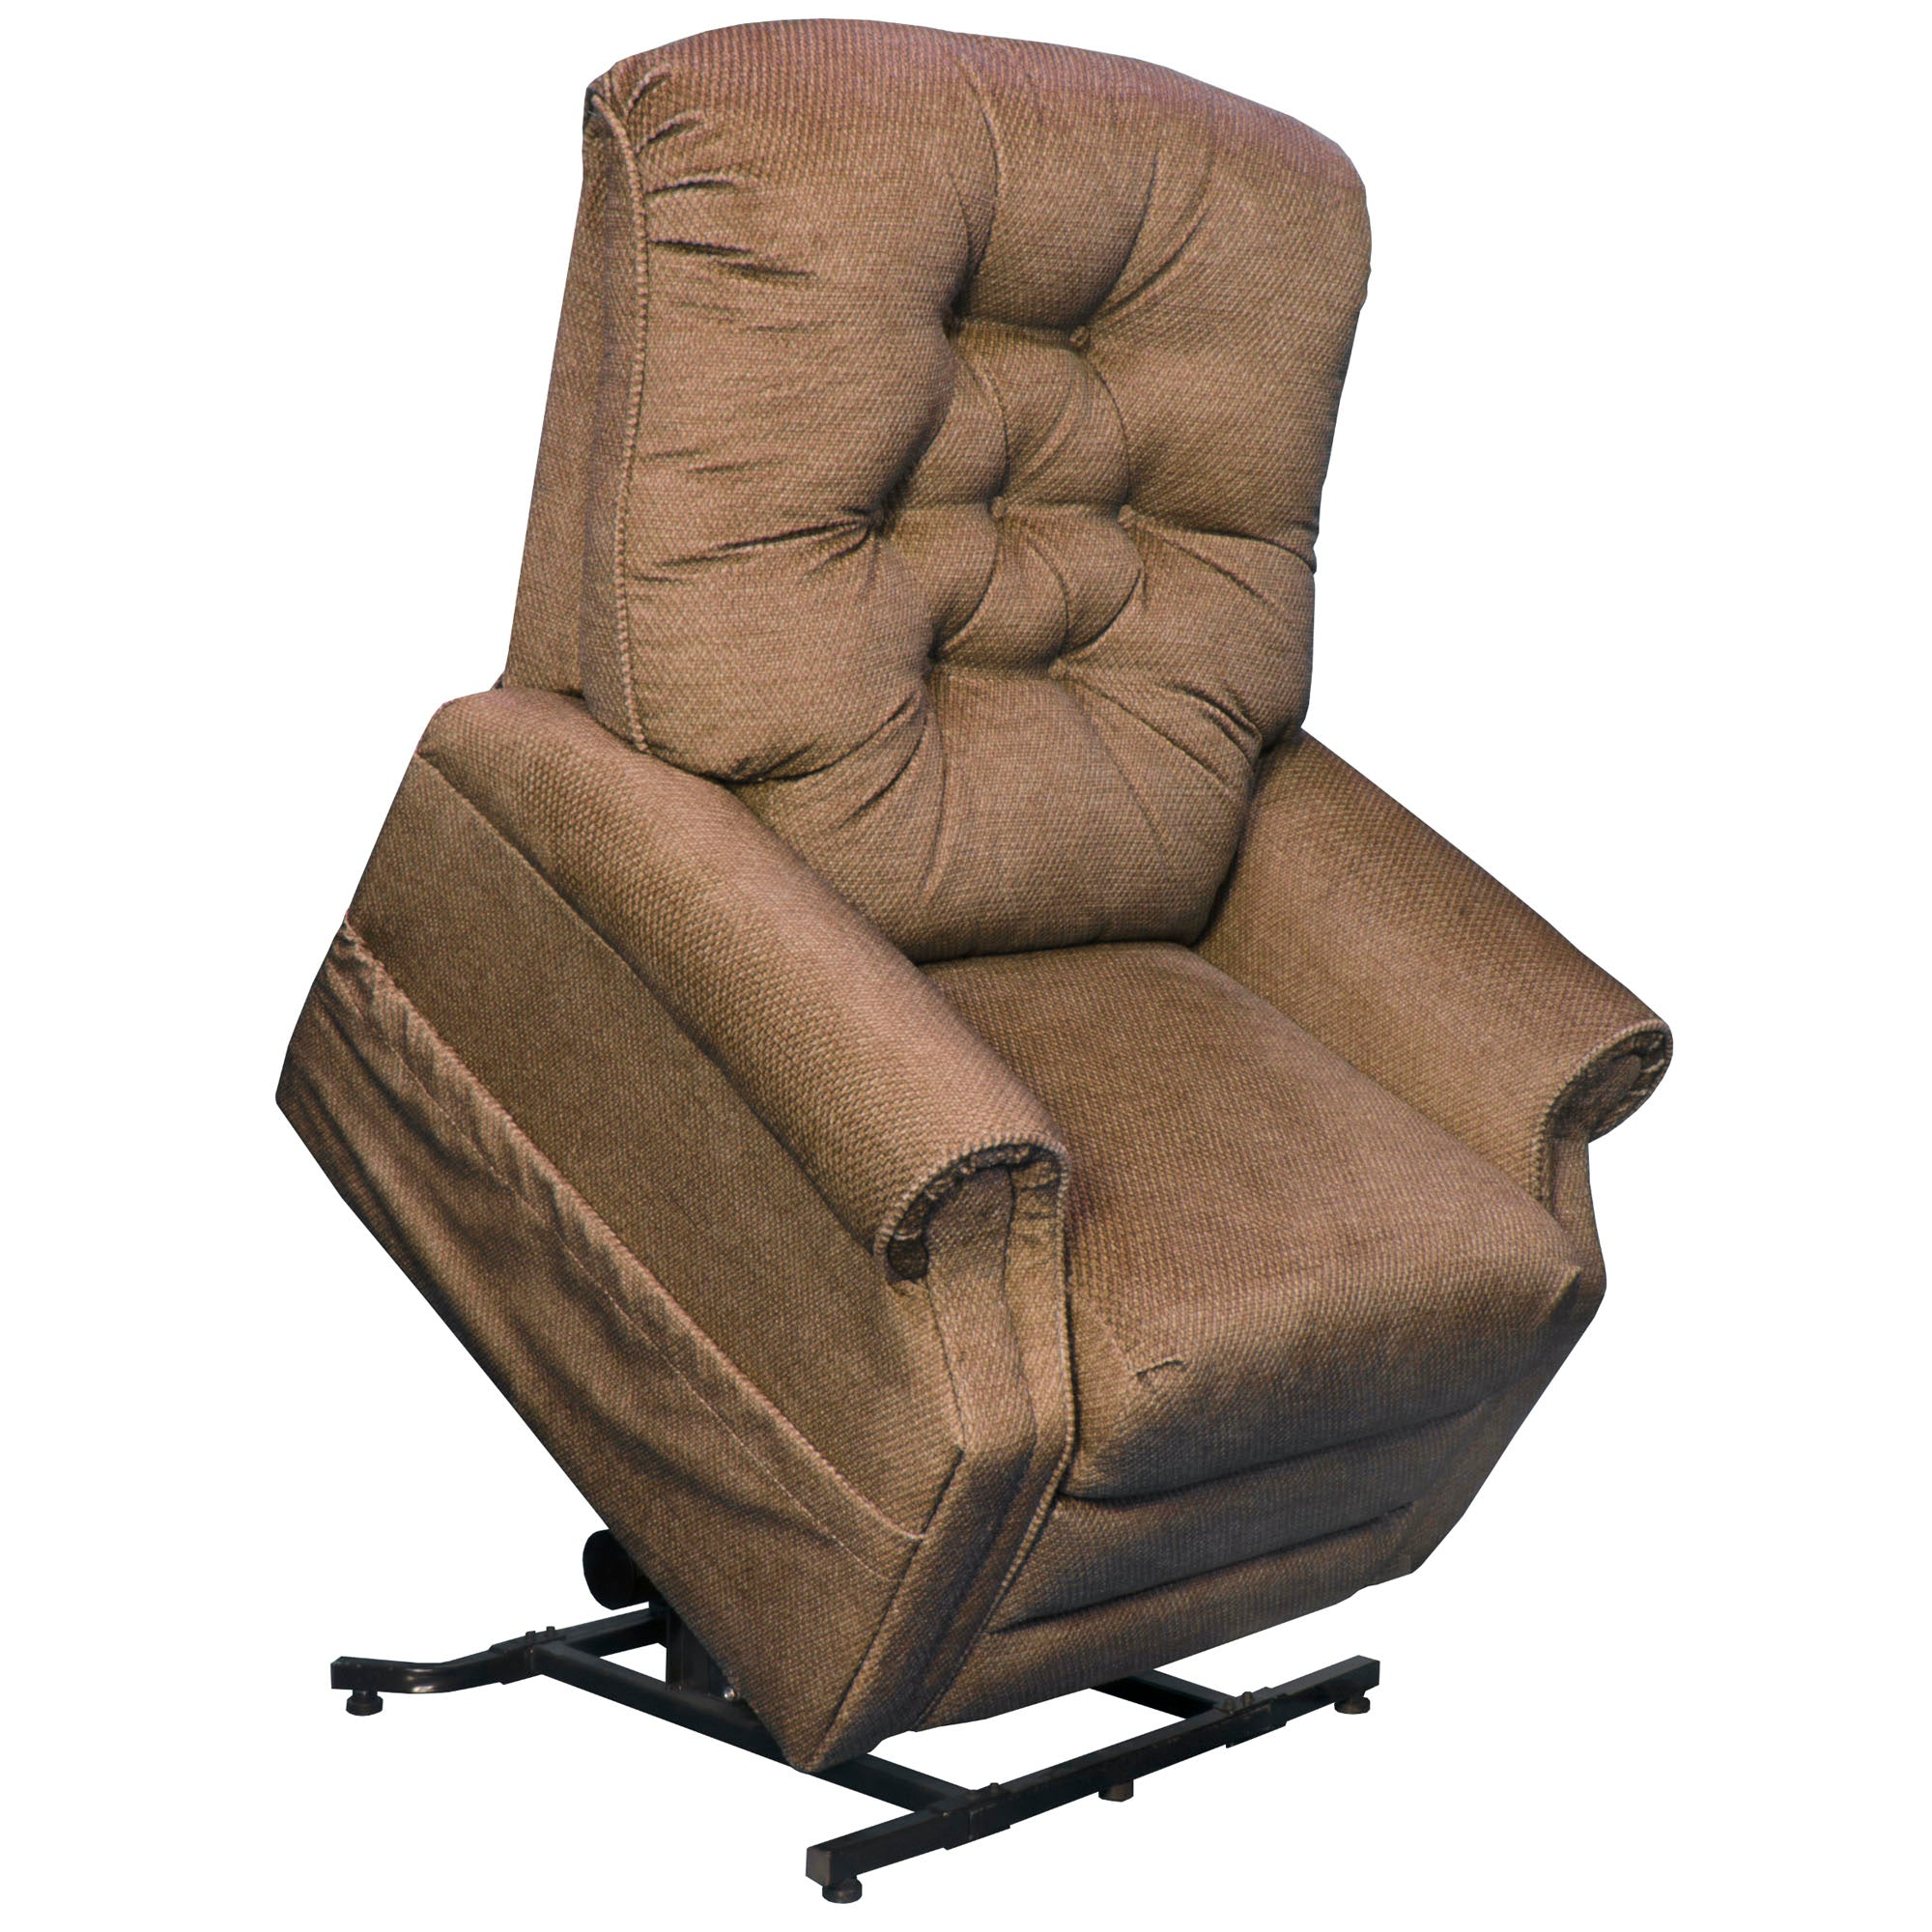 Pleasing Patriot 4824 Power Lift Chair Recliner Ocoug Best Dining Table And Chair Ideas Images Ocougorg